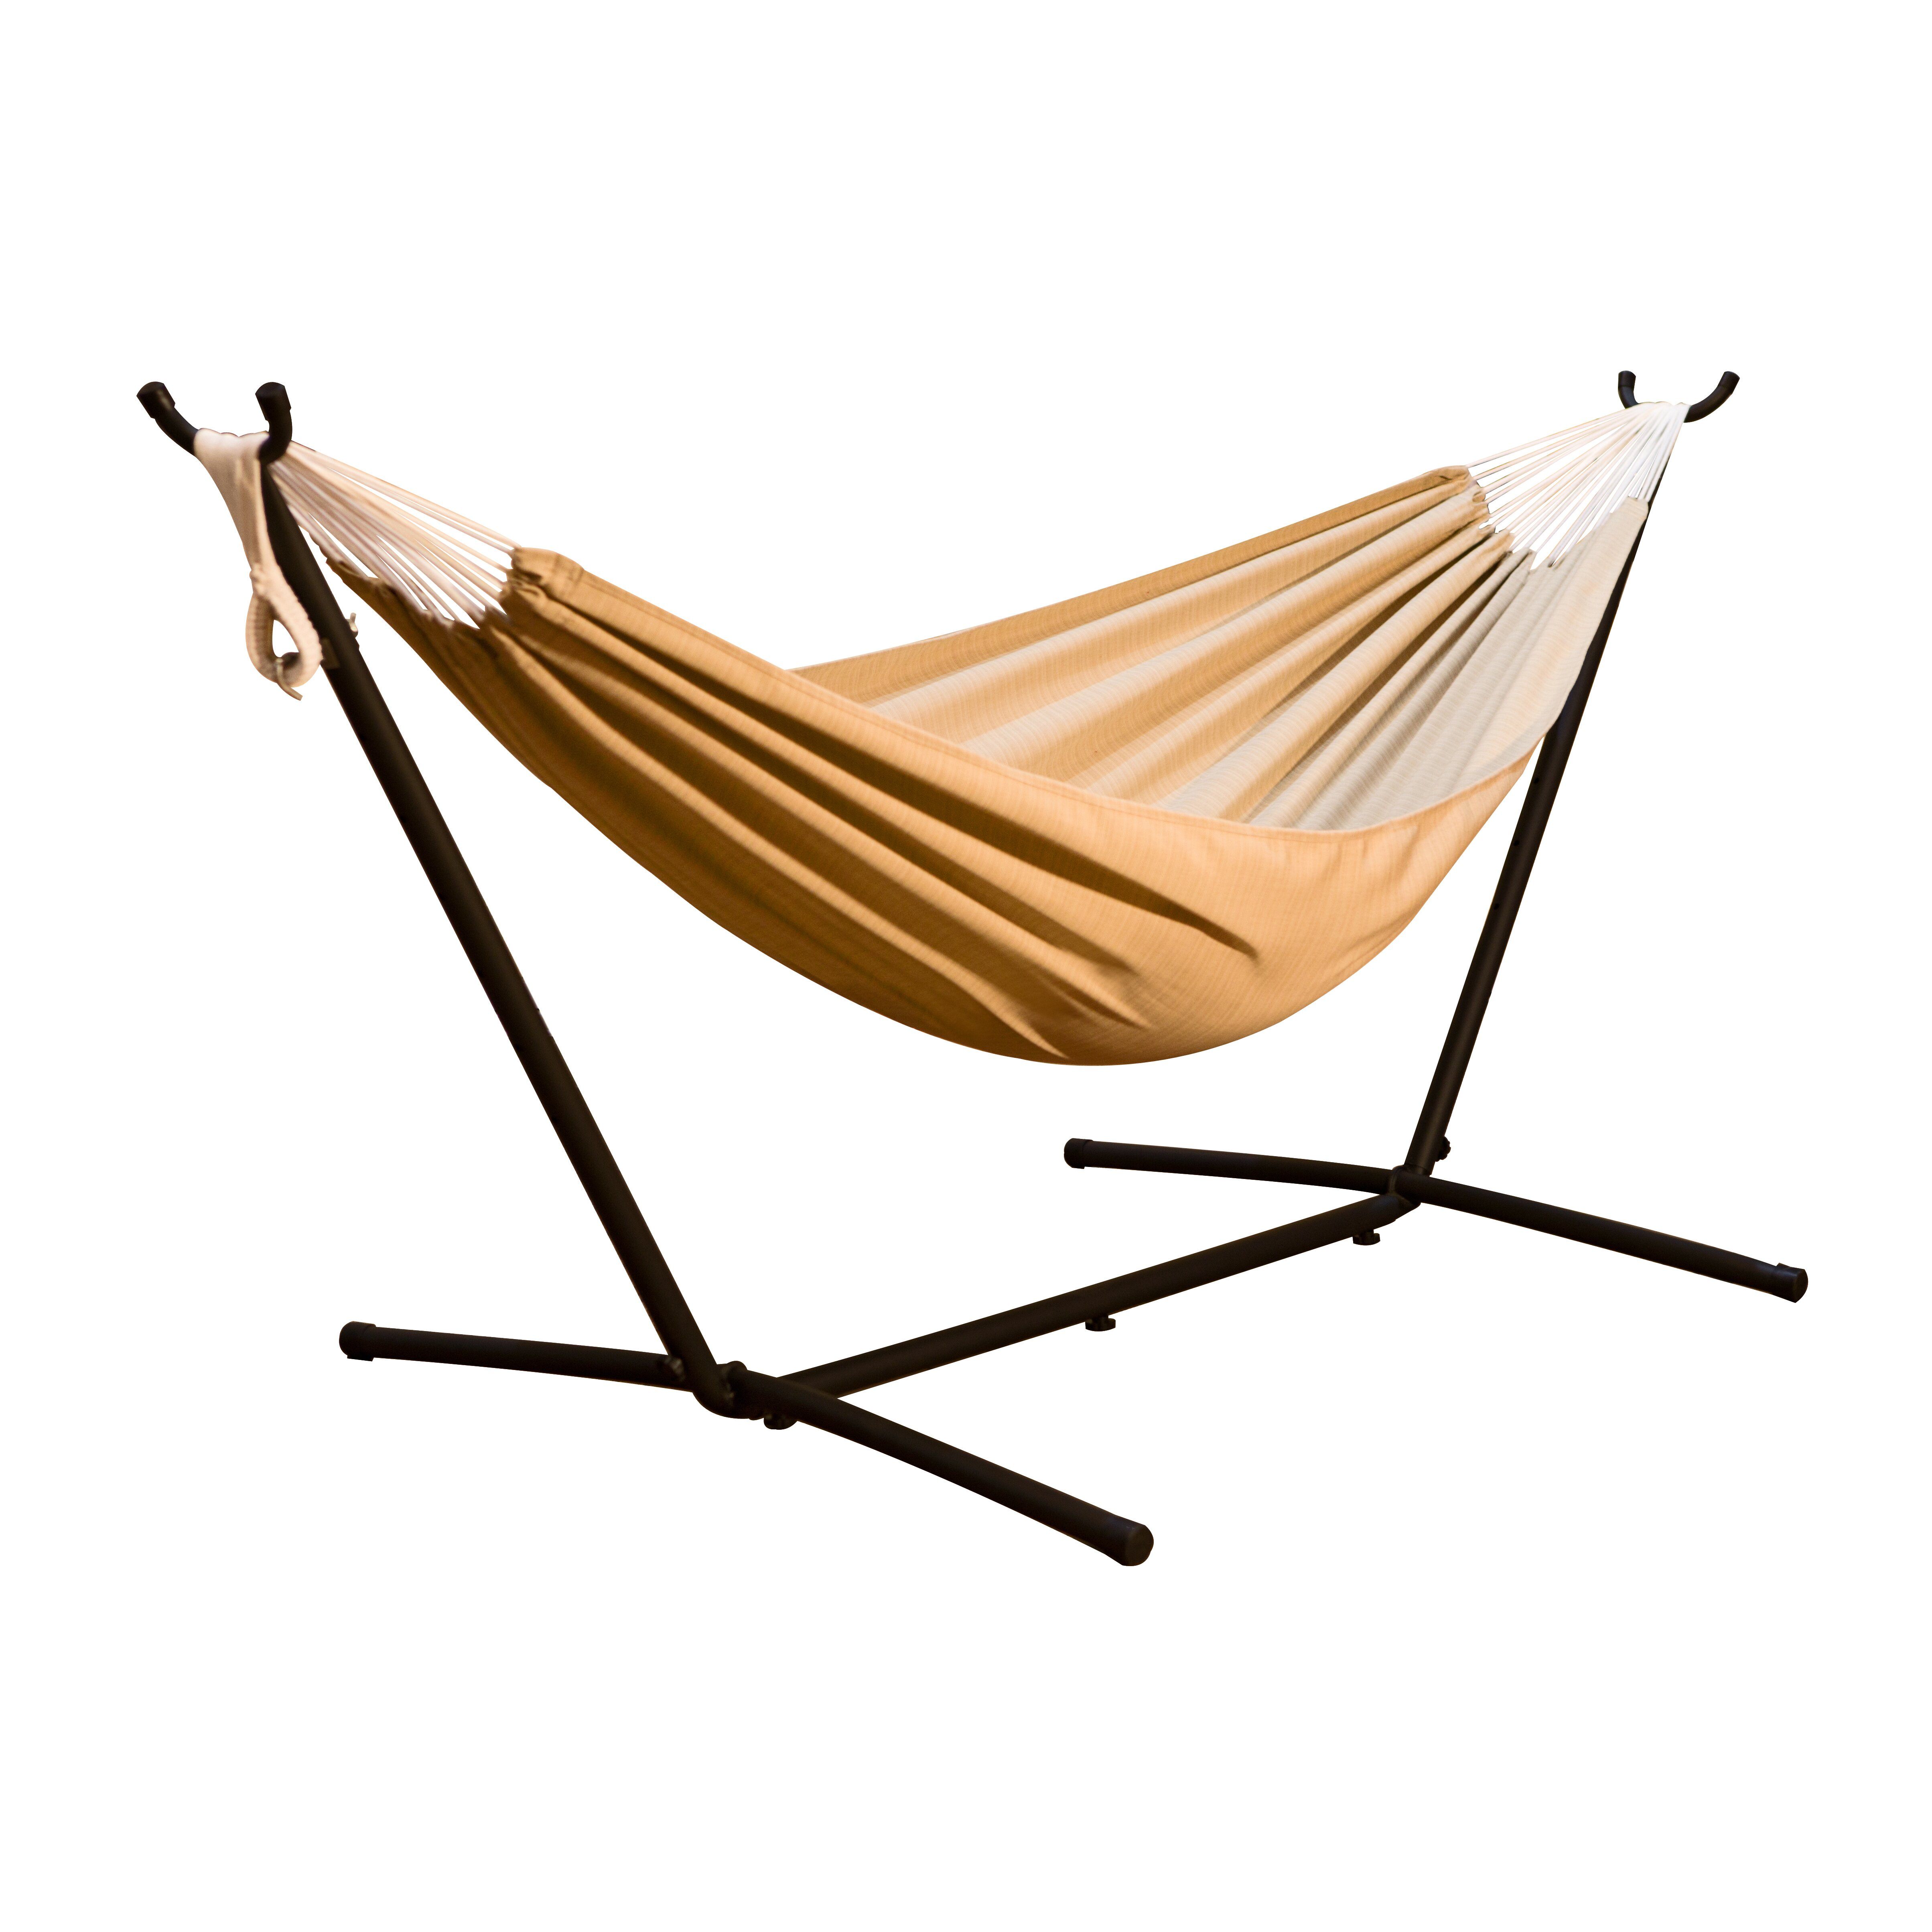 Vivere Hammocks Combo Hammock With Stand Amp Reviews Wayfair